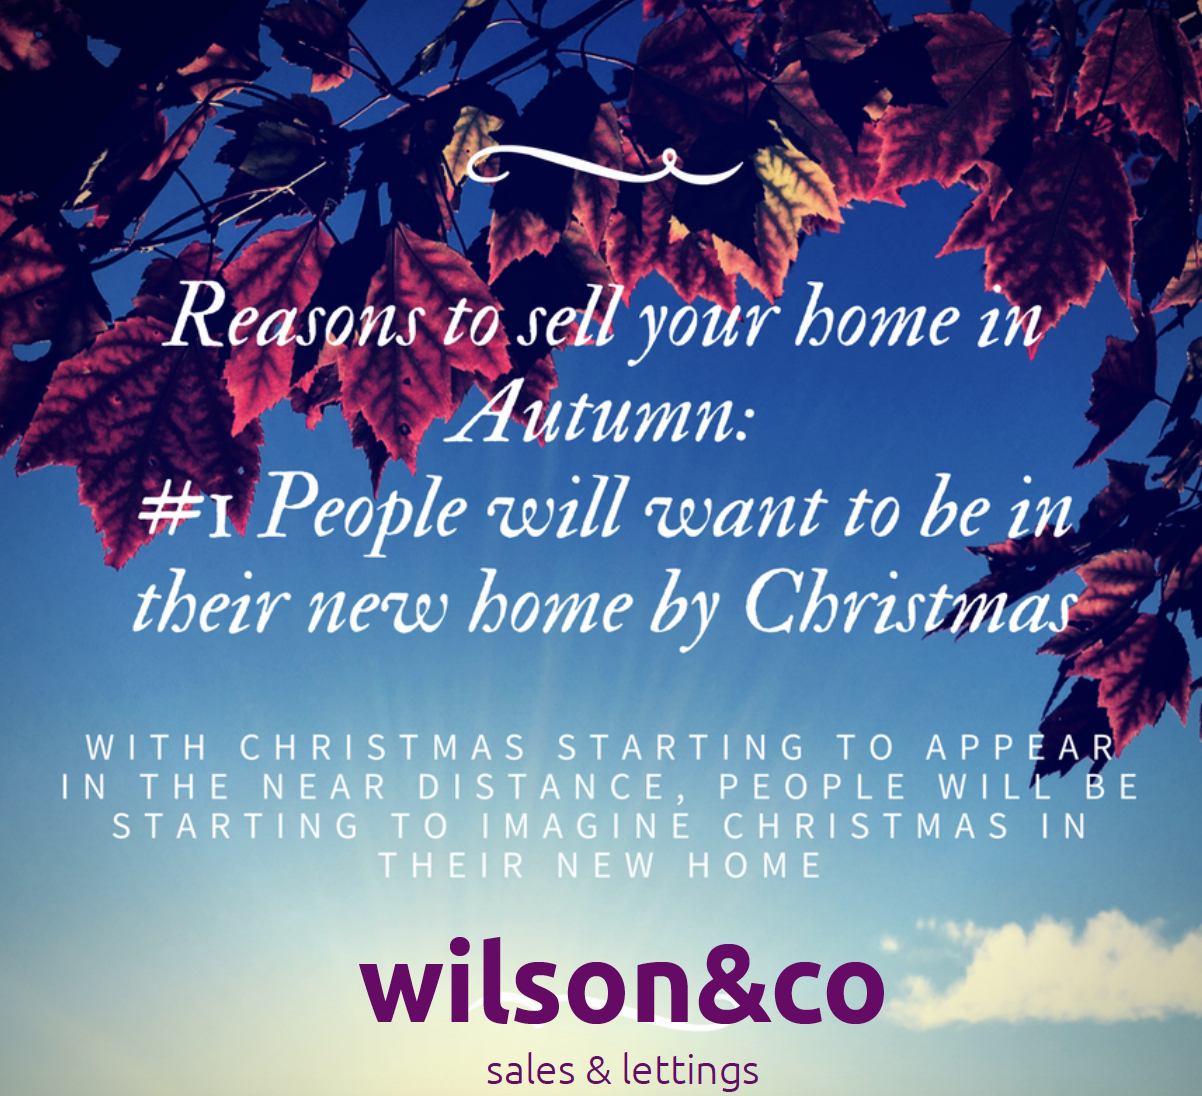 Wilson&Co Homes presents Top Five Reasons To Sell Your Home In Autumn